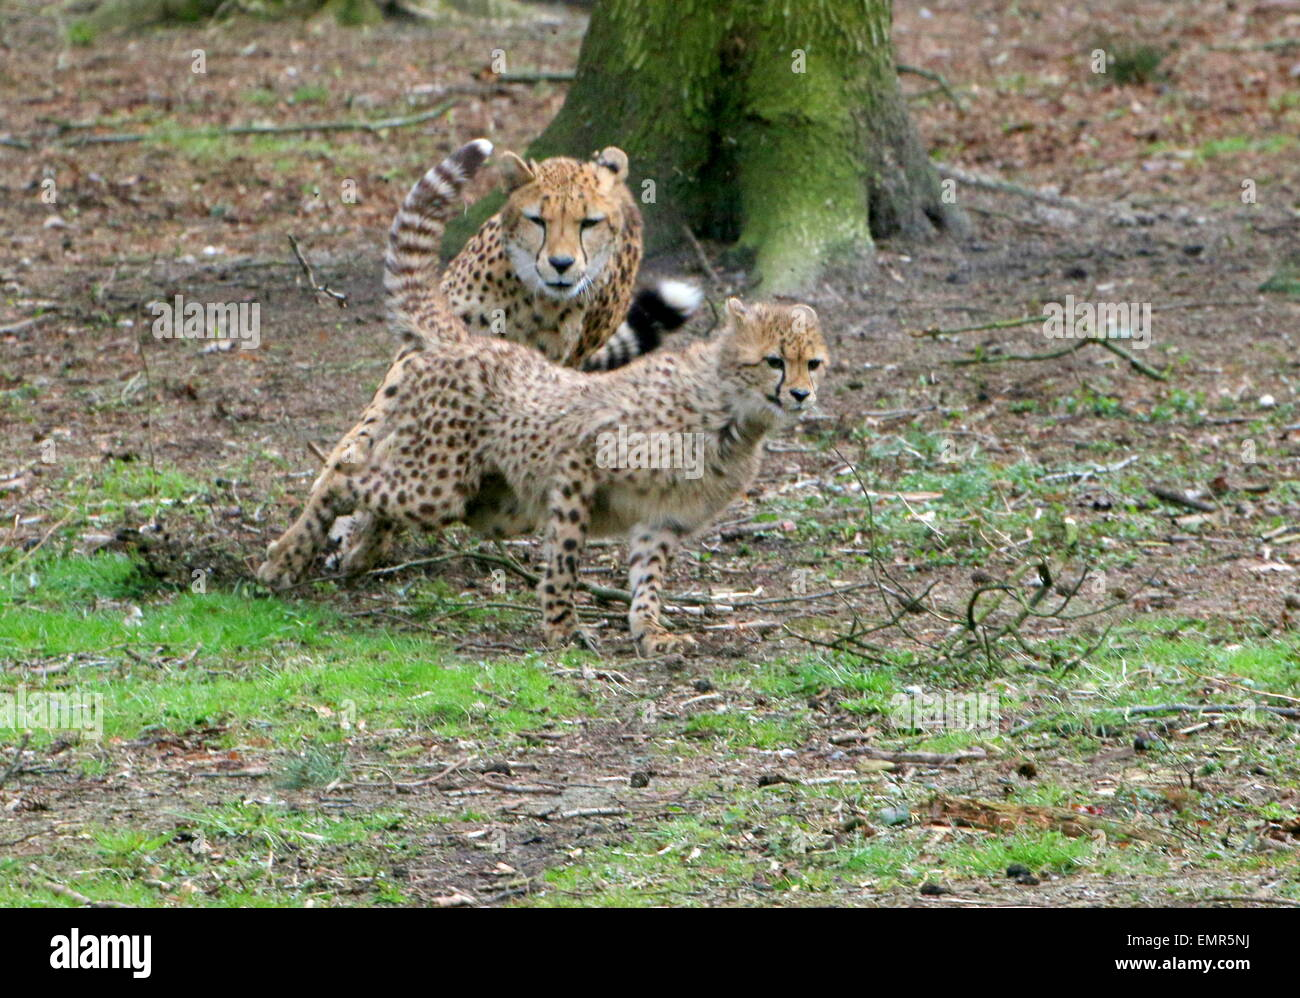 Cheetah cub  (Acinonyx jubatus) being chased by his mother - Stock Image